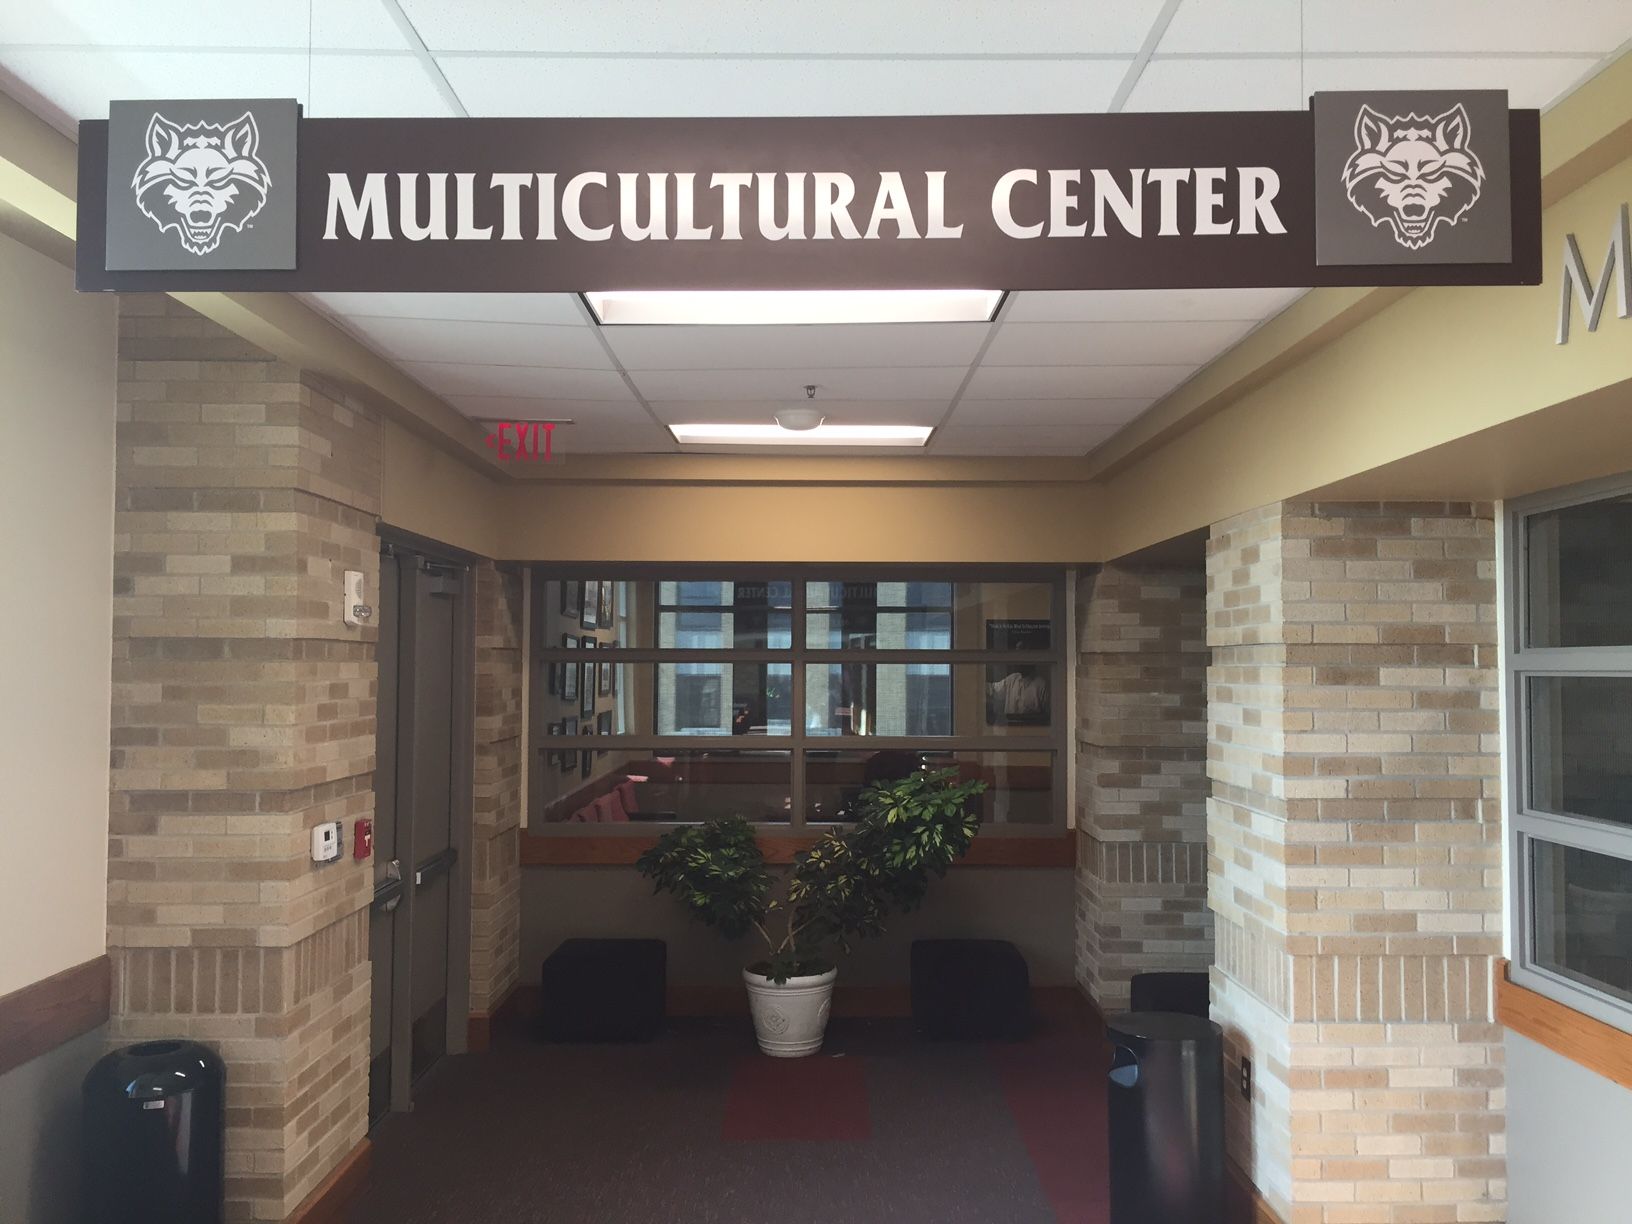 Multicultural Center Name Sign